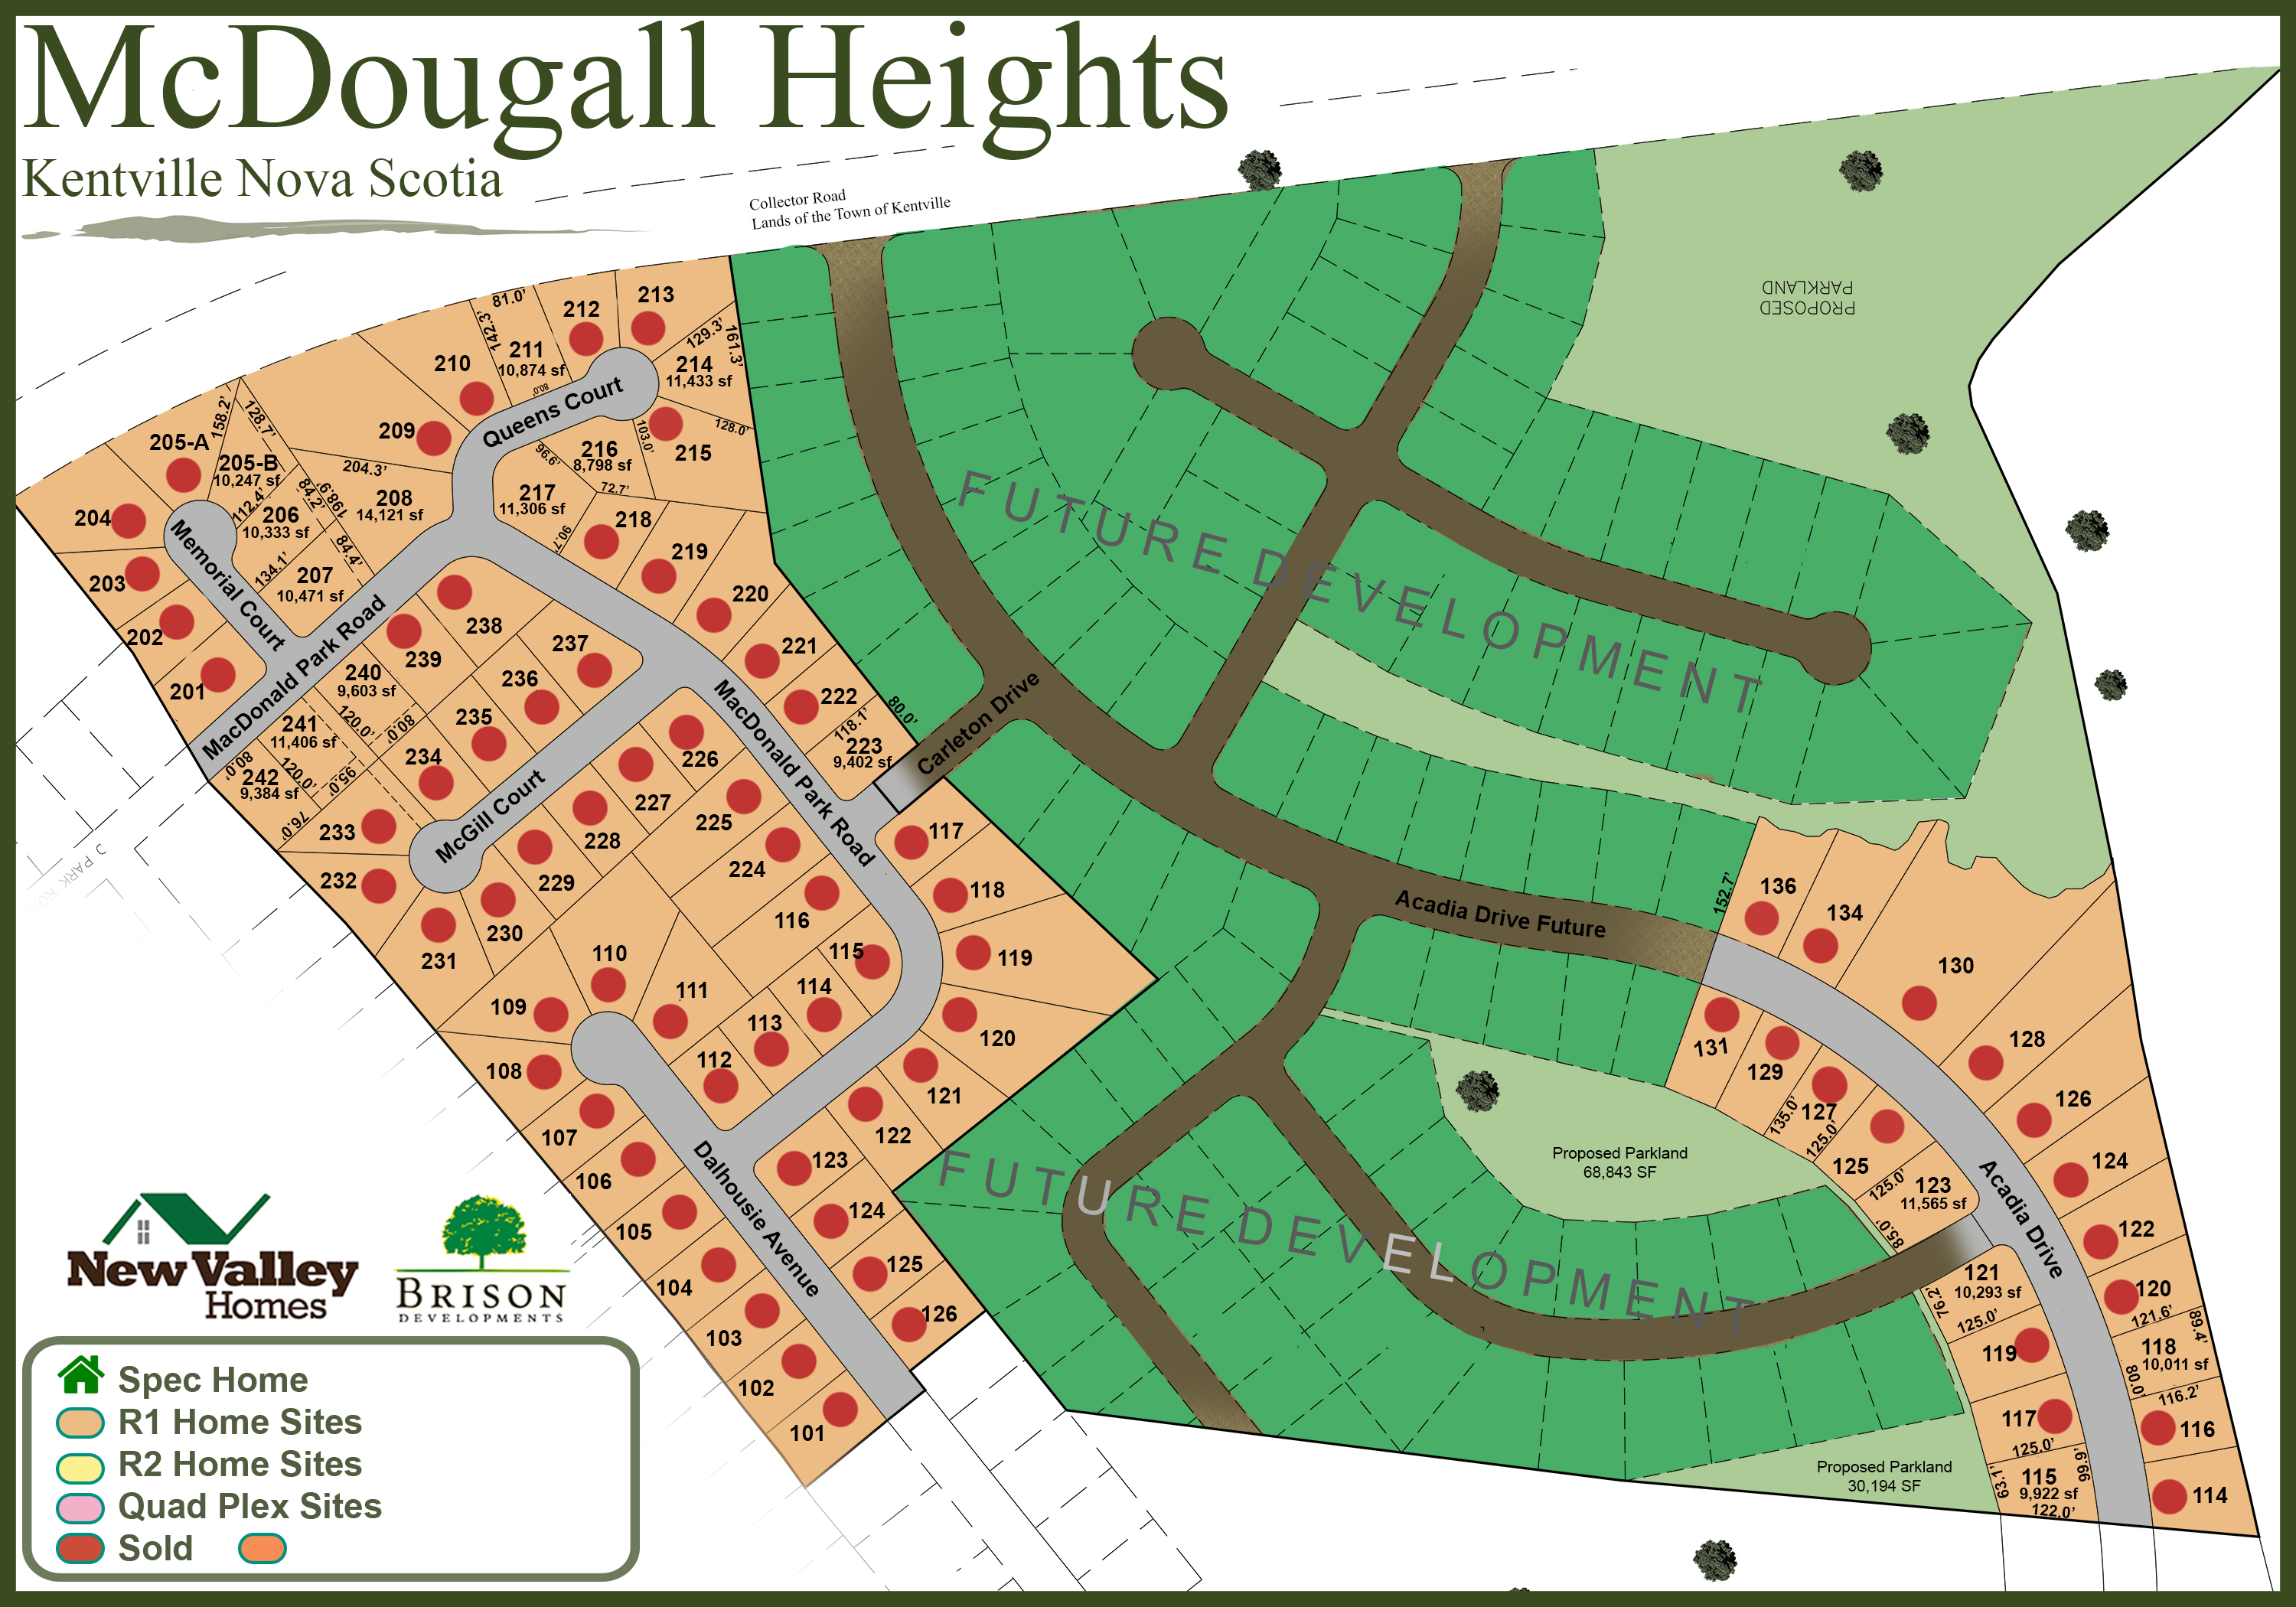 residential home sites available for purchase Kentville